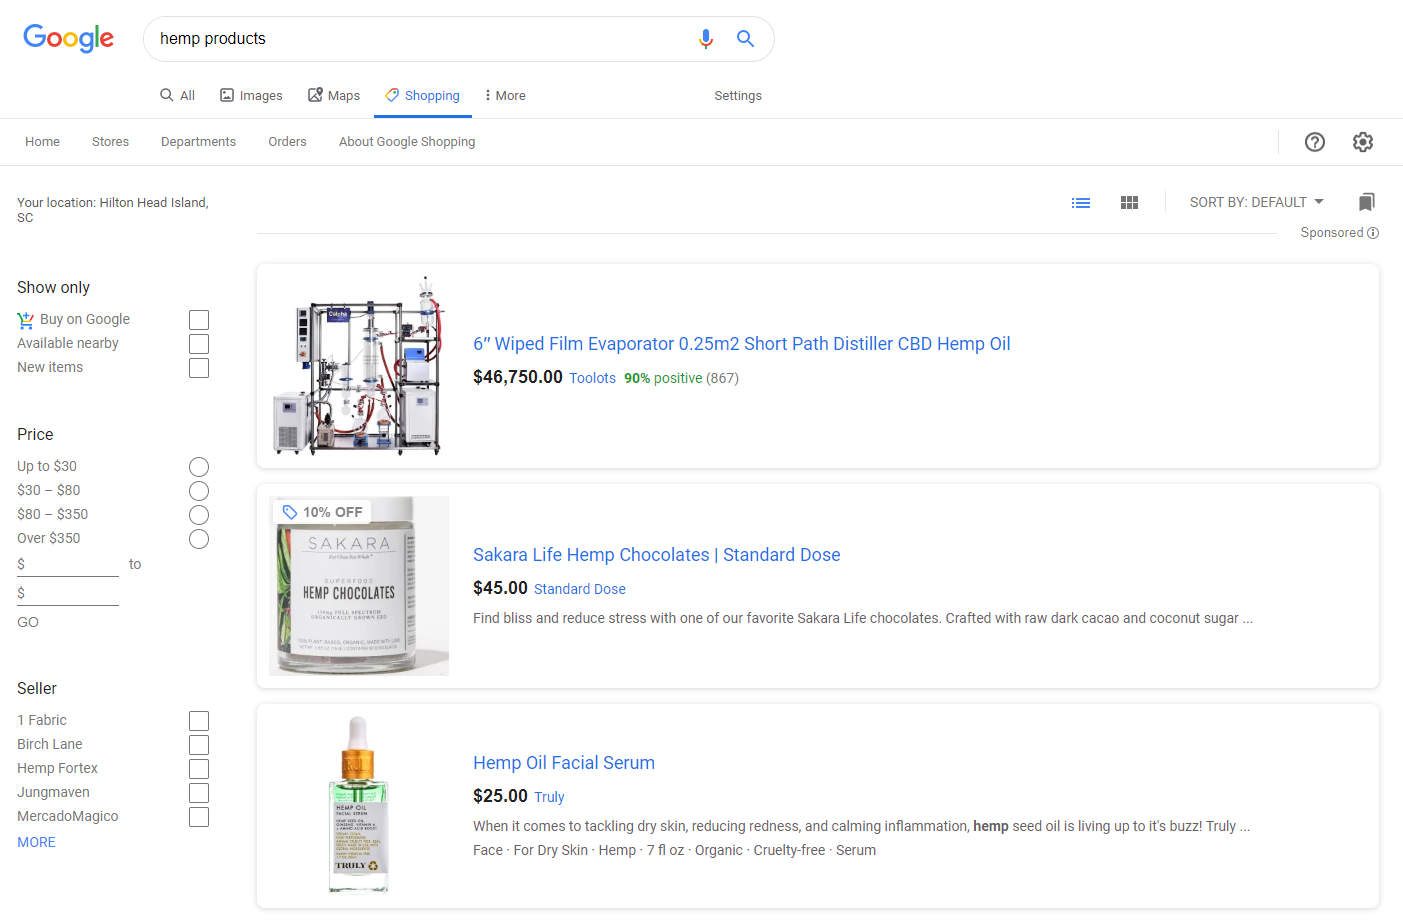 Screenshot of the results page from Google Shopping